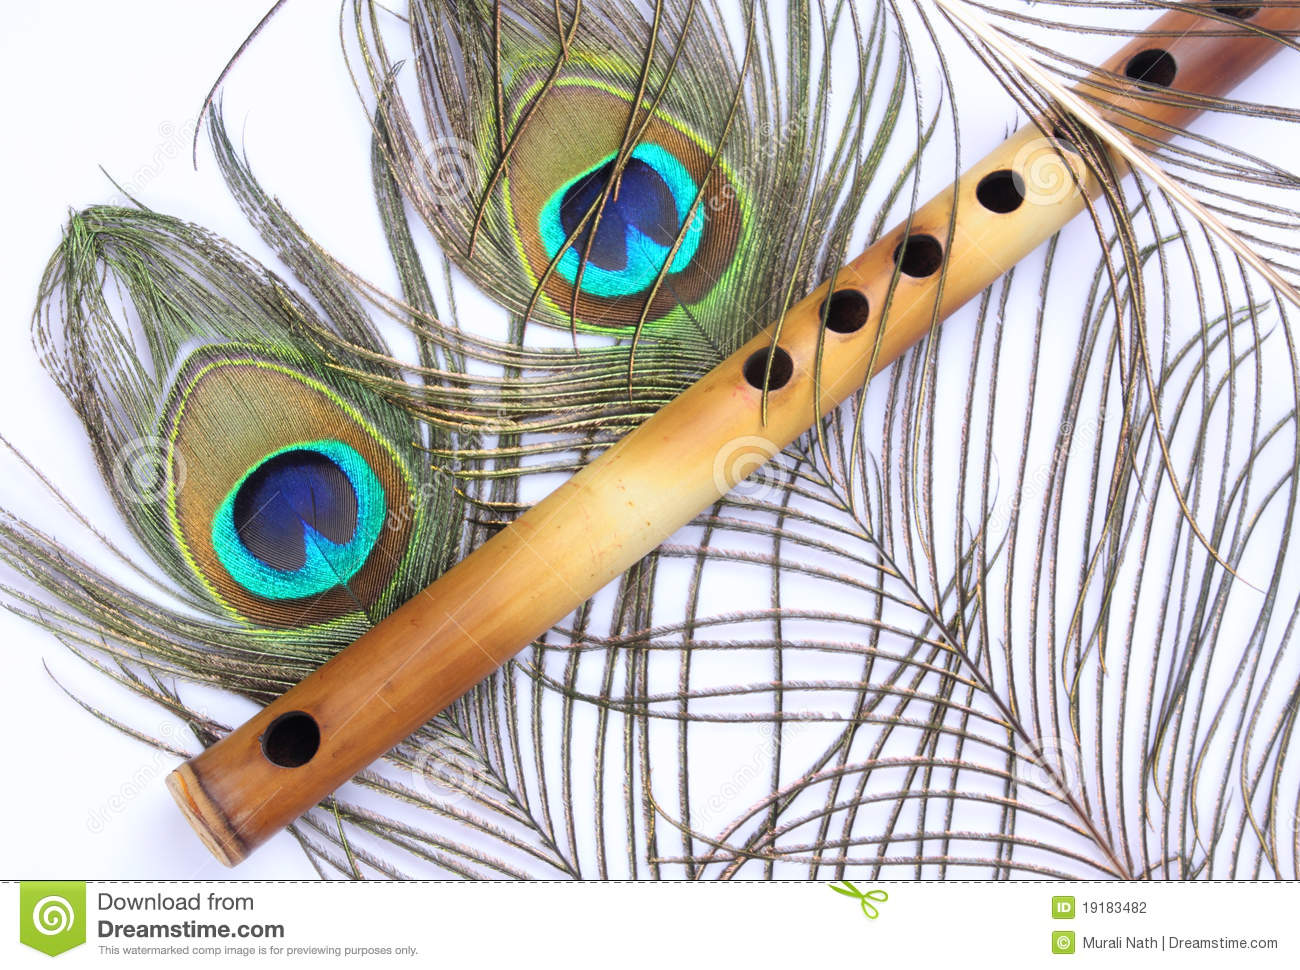 Peacock feather indian flute stock images 15 photos peacock feather with indian flute on white background stock photography biocorpaavc Gallery